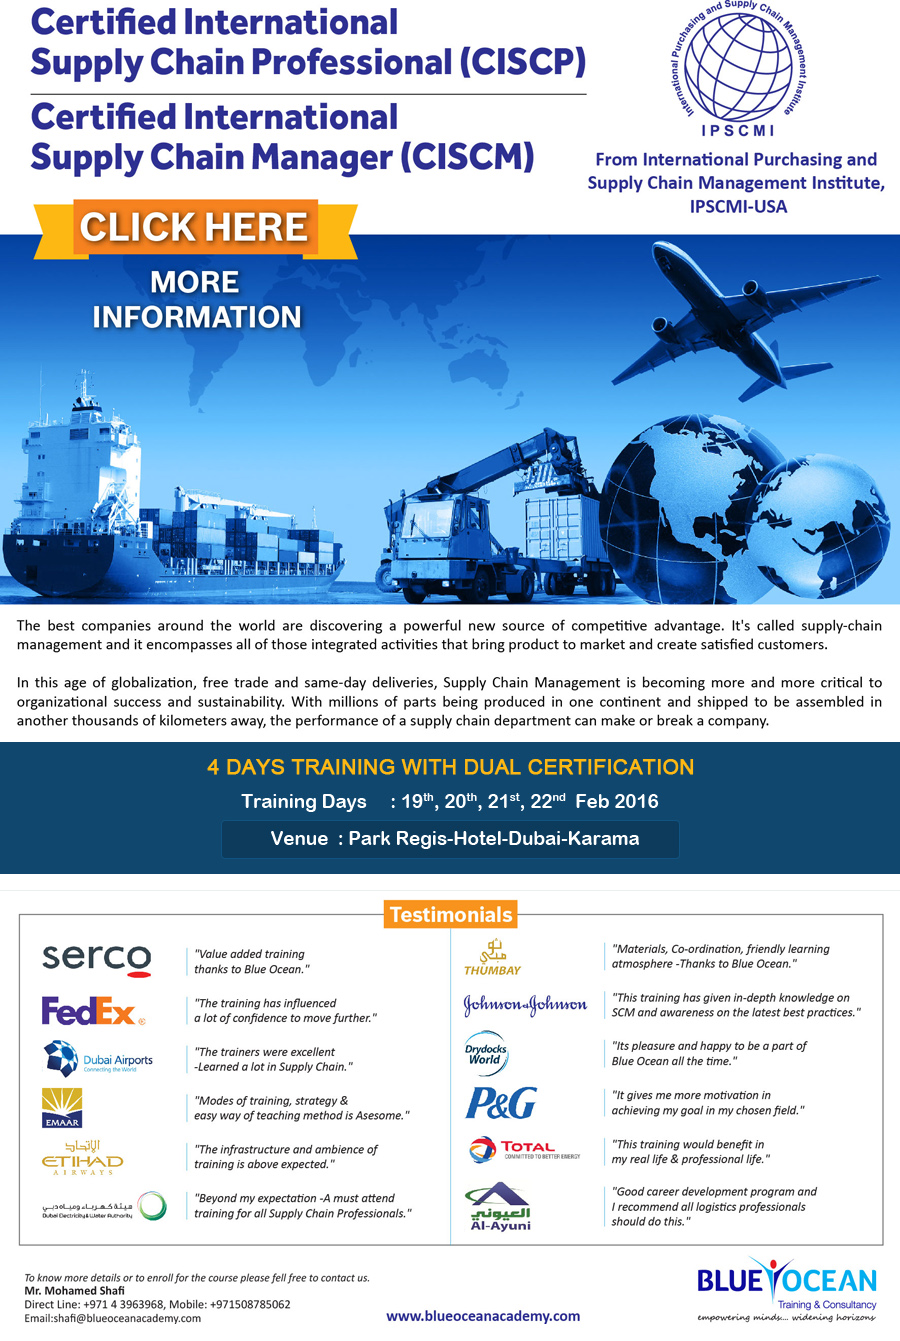 Certified International Supply Chain Professional (CISCP)